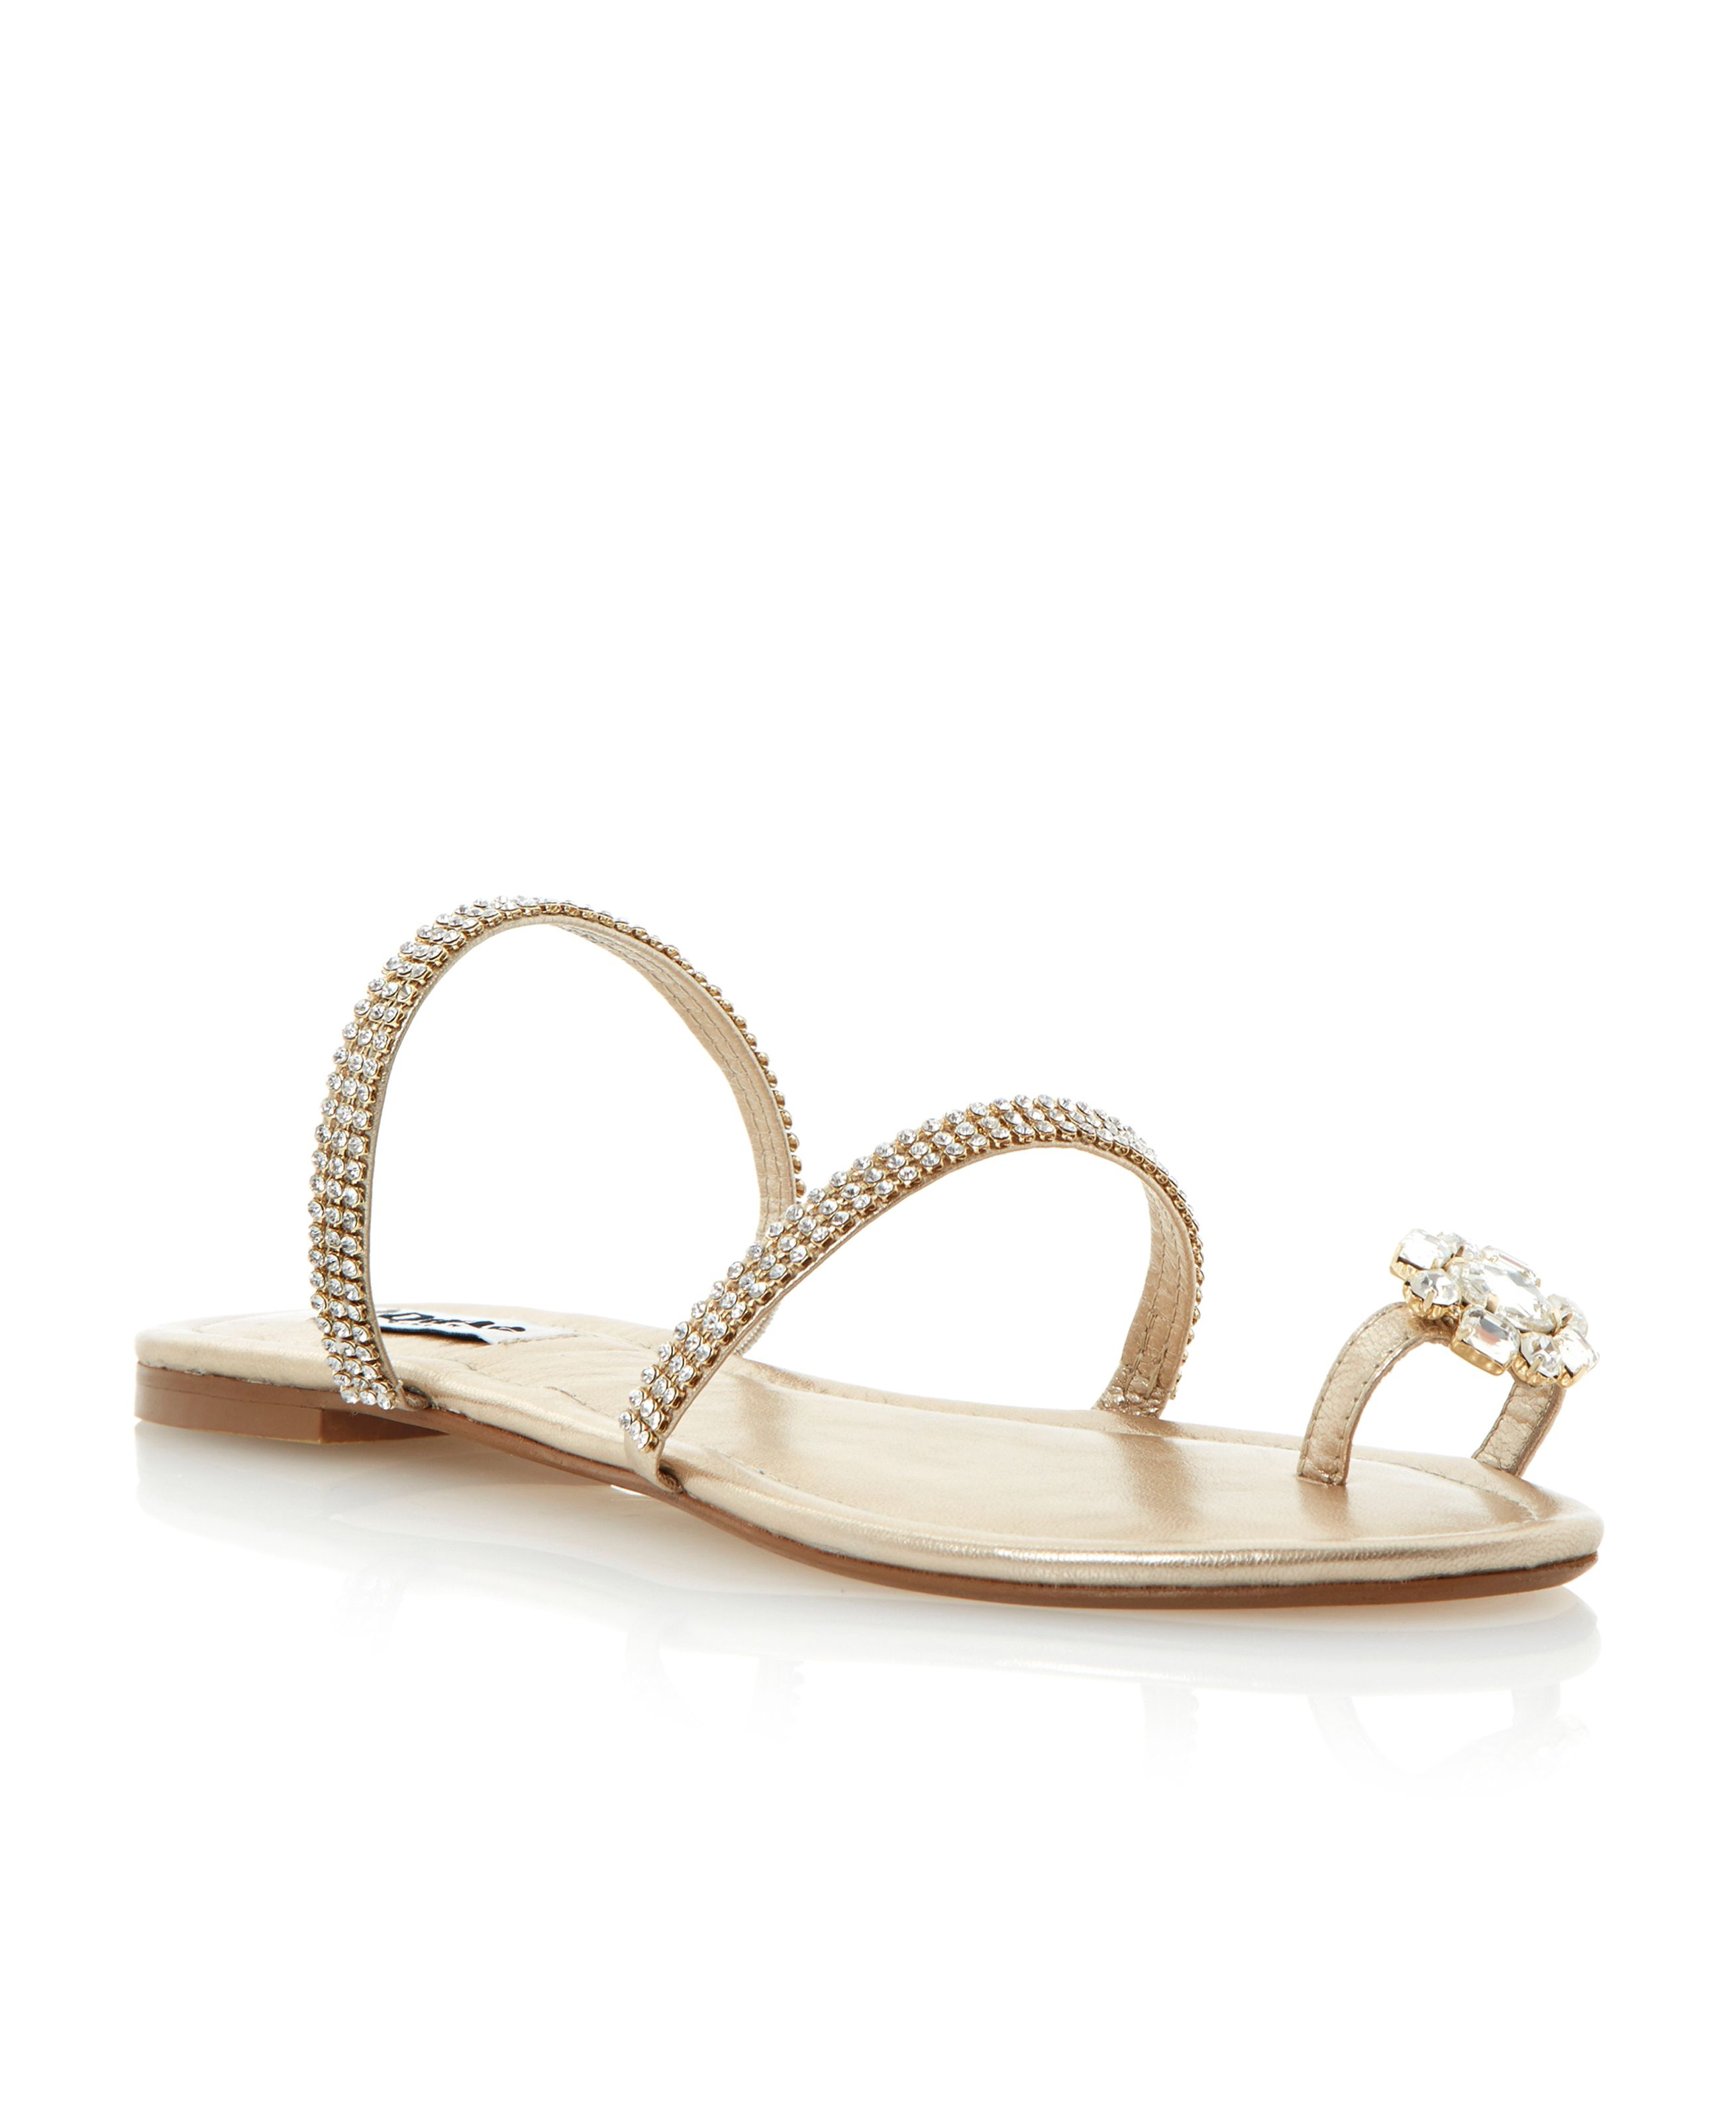 Kate leather flat dressy sandals